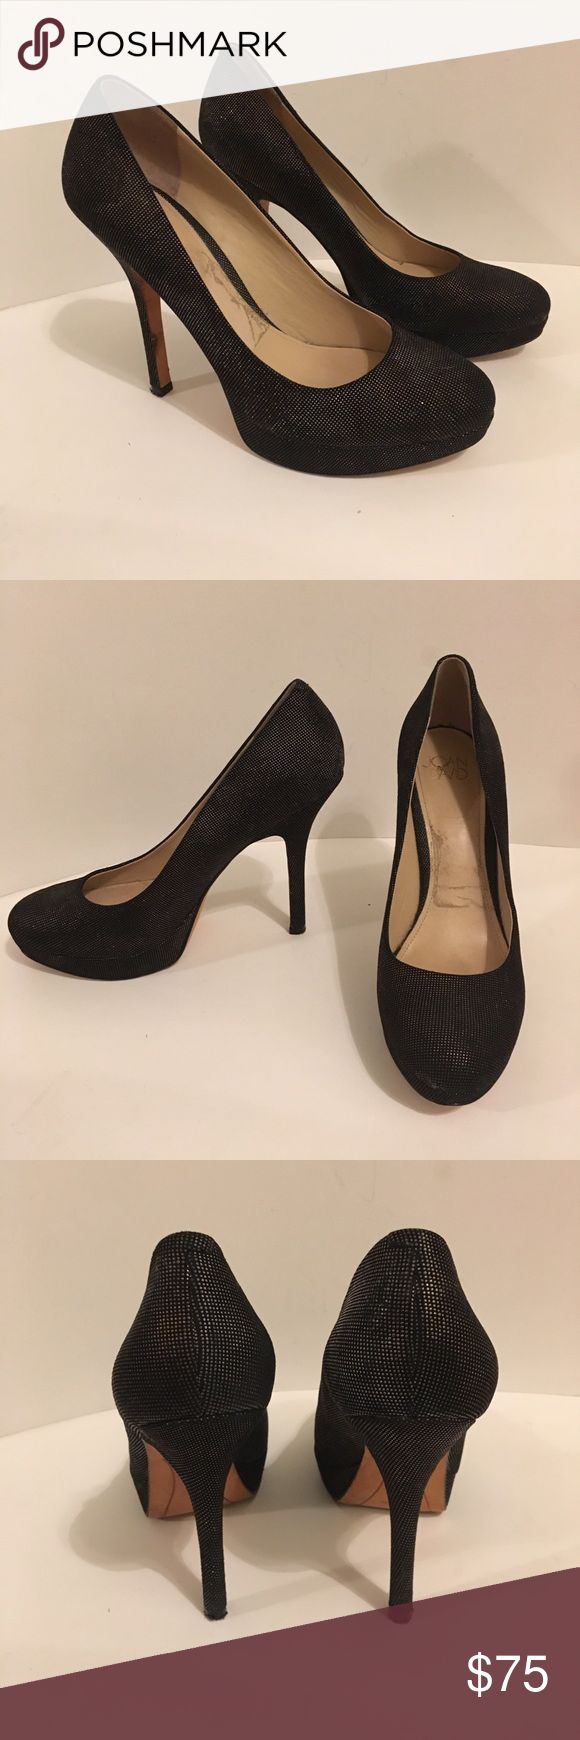 Joan & David Black Sparkle Platform Heels 👠 Sz 8 Gently worn Joan & David pumps with platform style heel. Material is a black and gold sparkle texture with a leather sole. Really beautiful shimmer shoes for a party! Size 8 Joan & David Shoes Heels